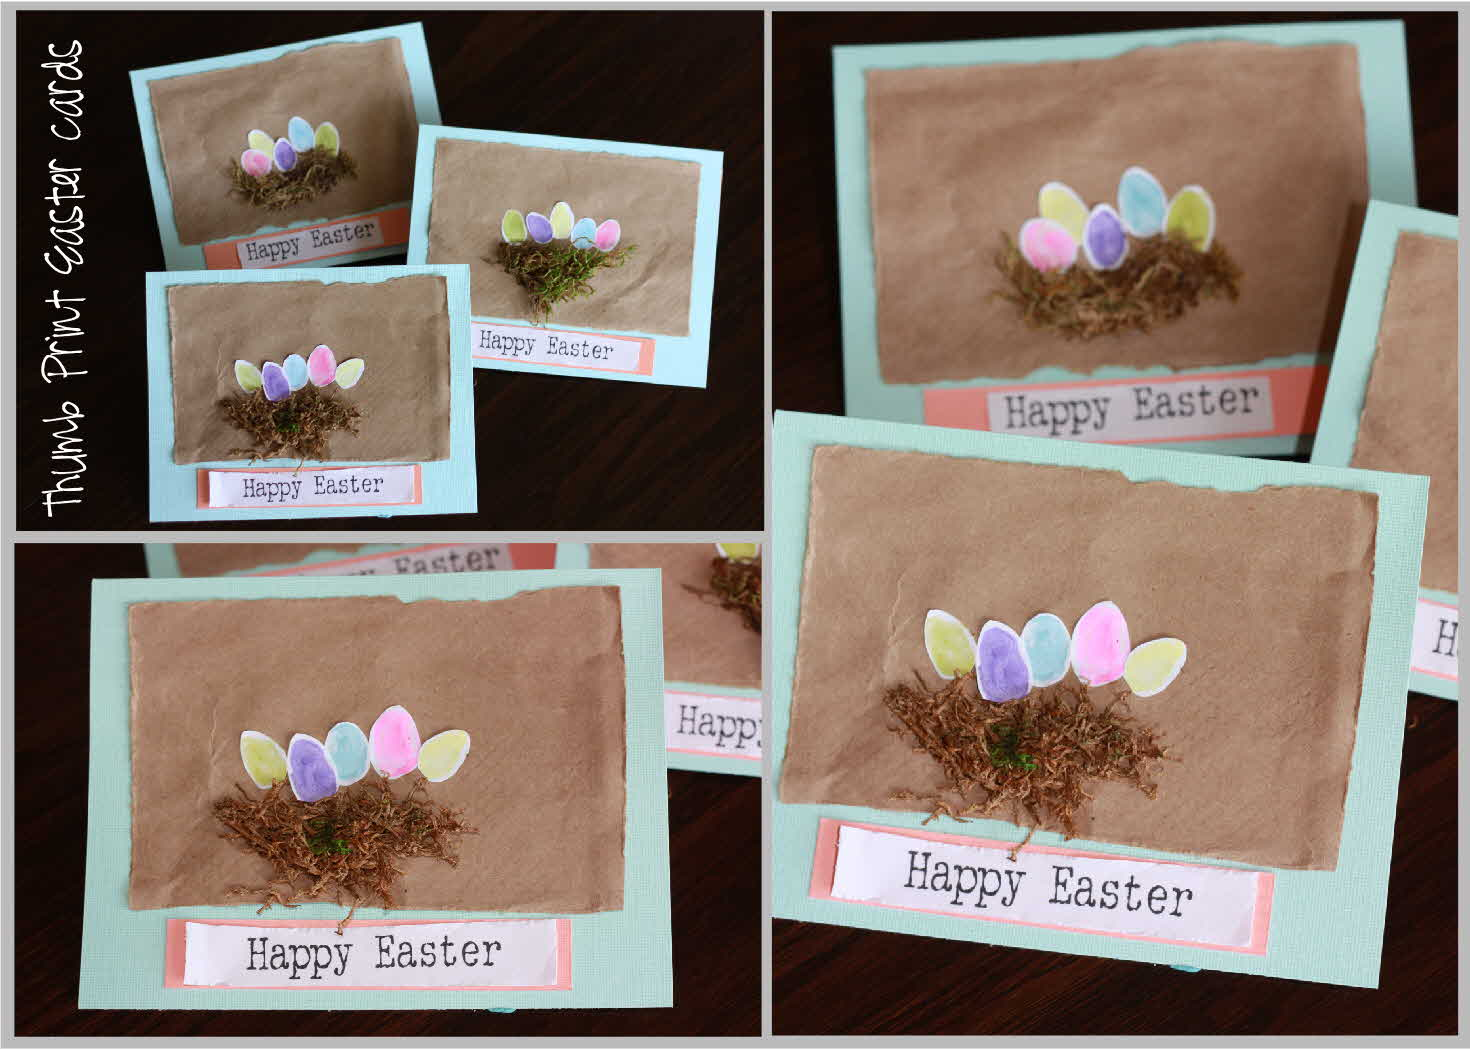 Just sweet and simple thumb print easter card super simple inexpensive and kid friendly i had my toddler dip his thumb in paint and make tons of thumbprints all over a paper m4hsunfo